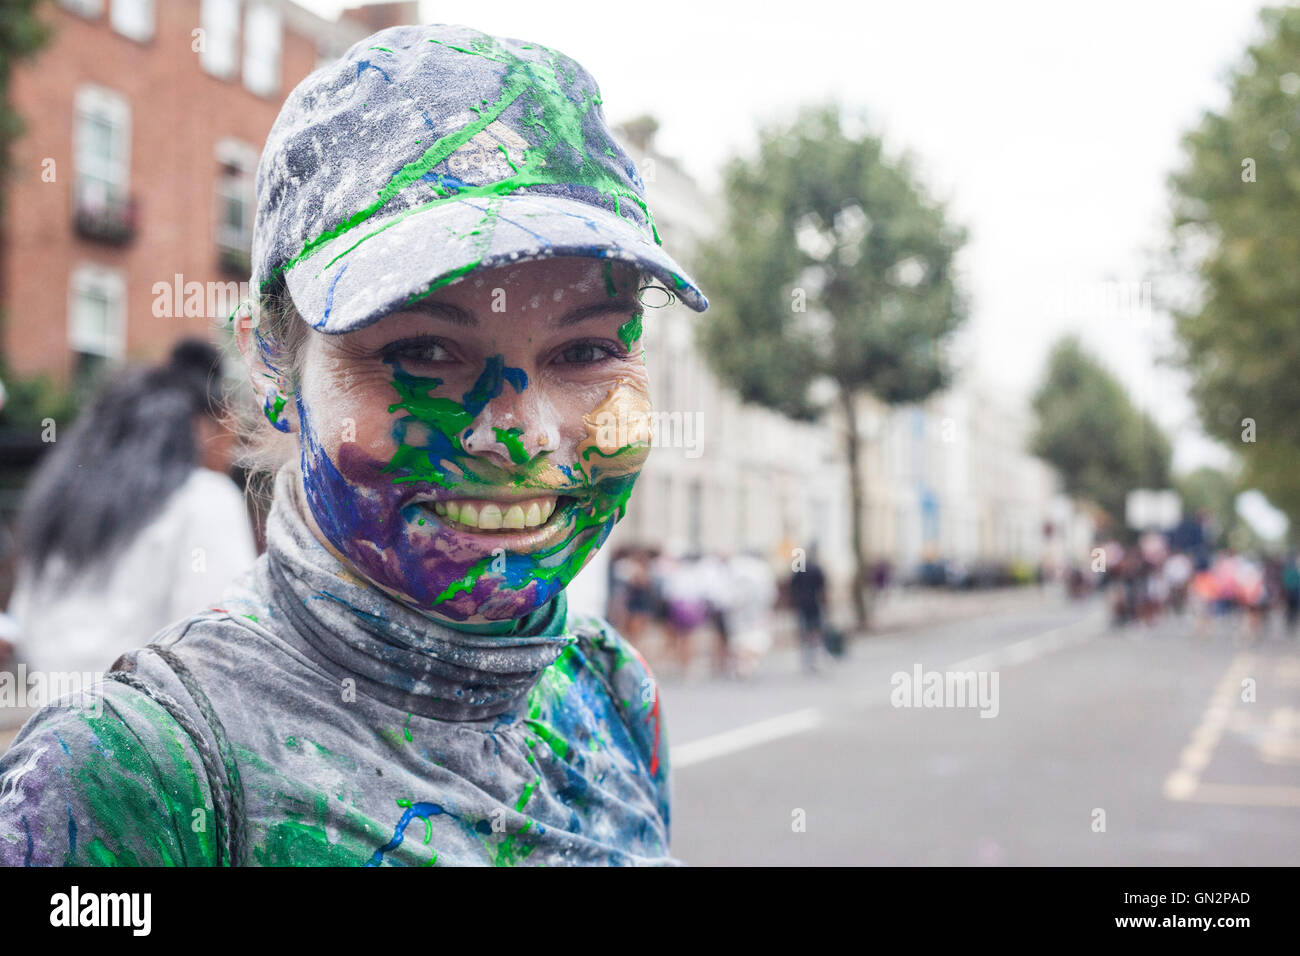 London, UK. 28 August 2016. The traditional early morning Jouvert Parade kicks off the first day of Notting Hill - Stock Image